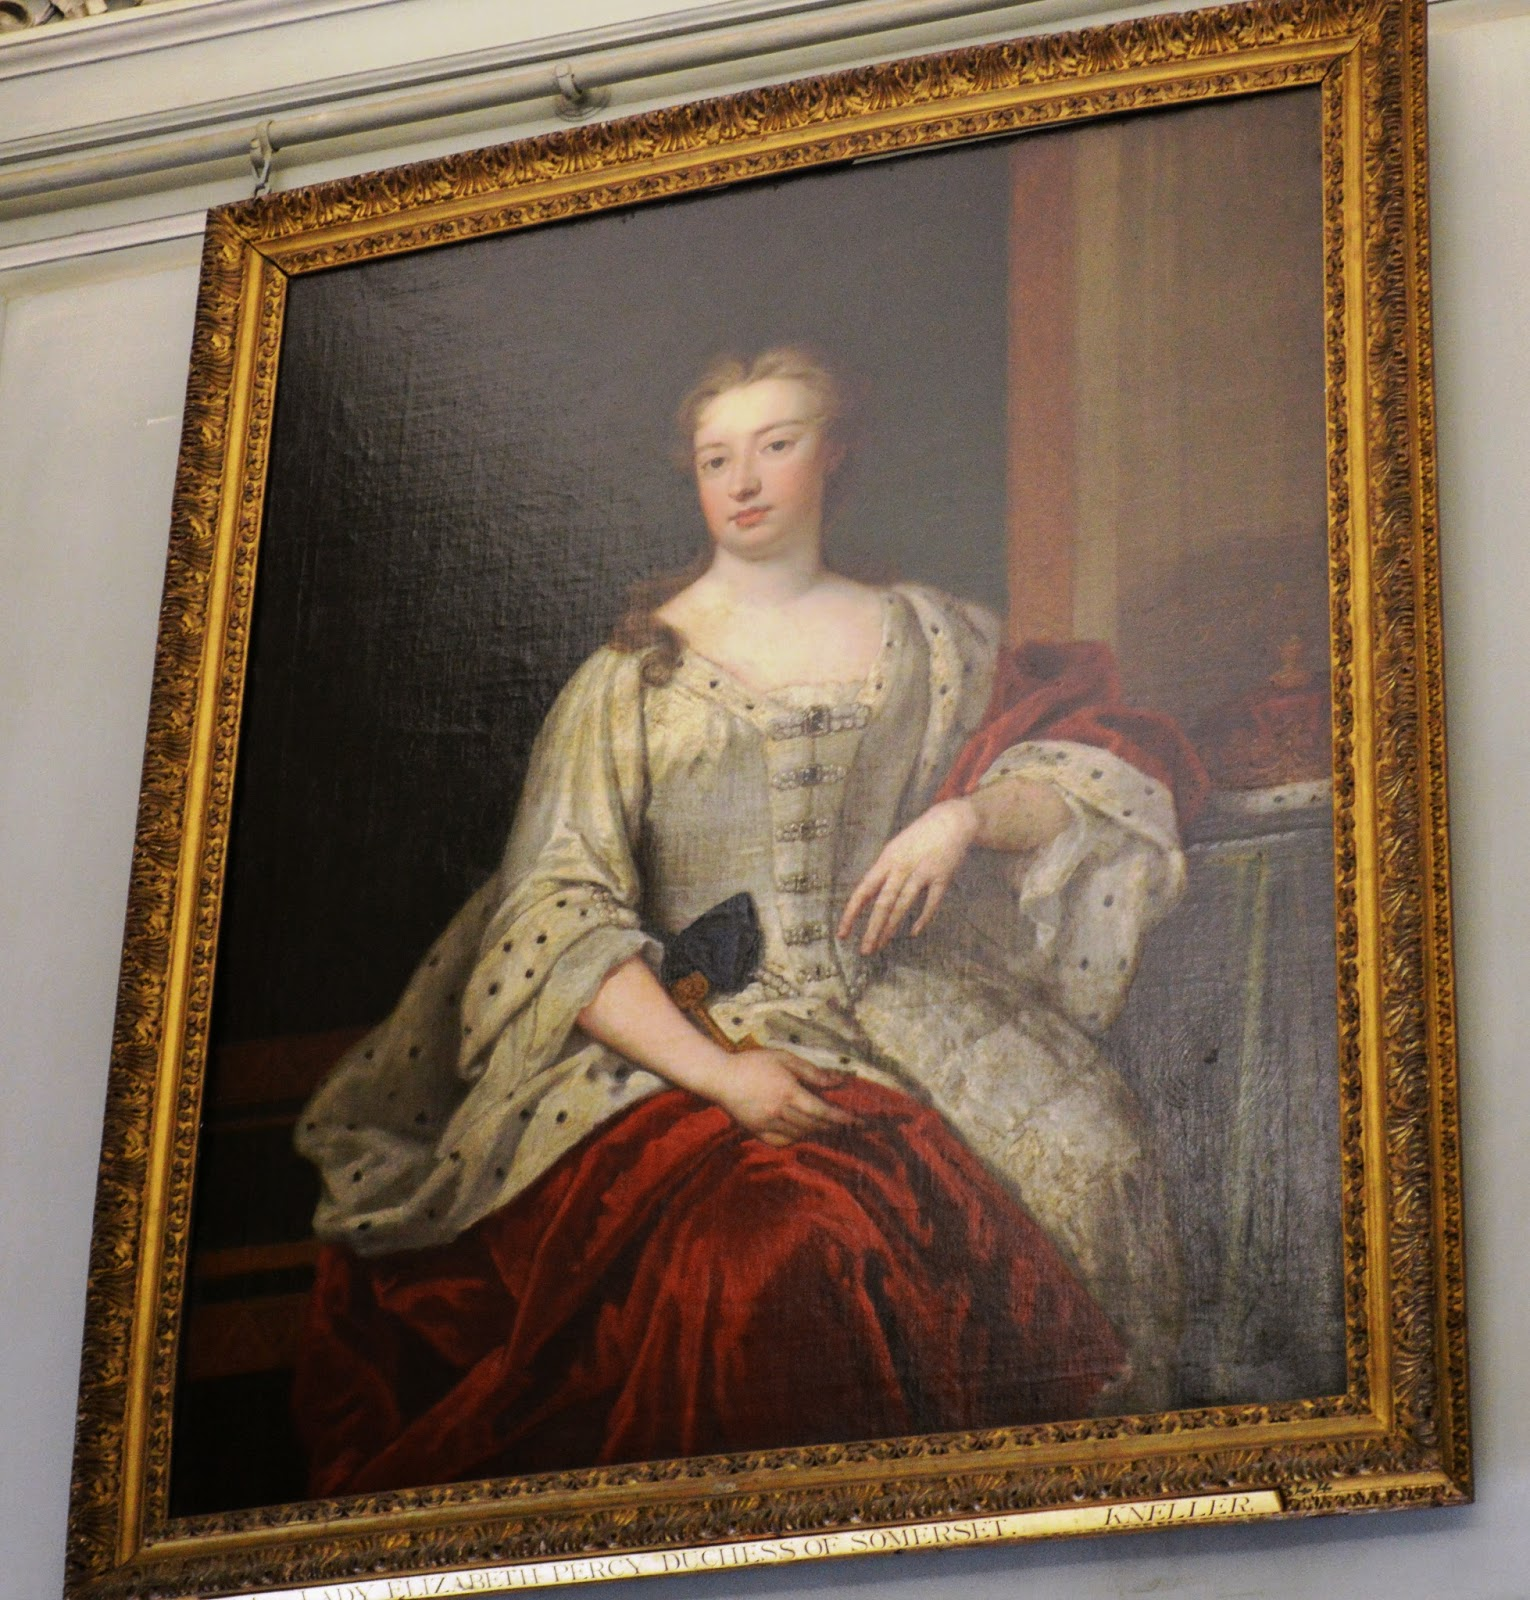 painting, potrait, marriage, noble woman, duchess, countess, Petworth House and Garden, inside, interior, visit, review, National Trust, history, UK, England, Sussex, historical property, old building, culture, day trip, photo, photograph, Percy Family, Elizabeth Seymour, Duchess of Somerset, Earl of Egremount, Wyndham